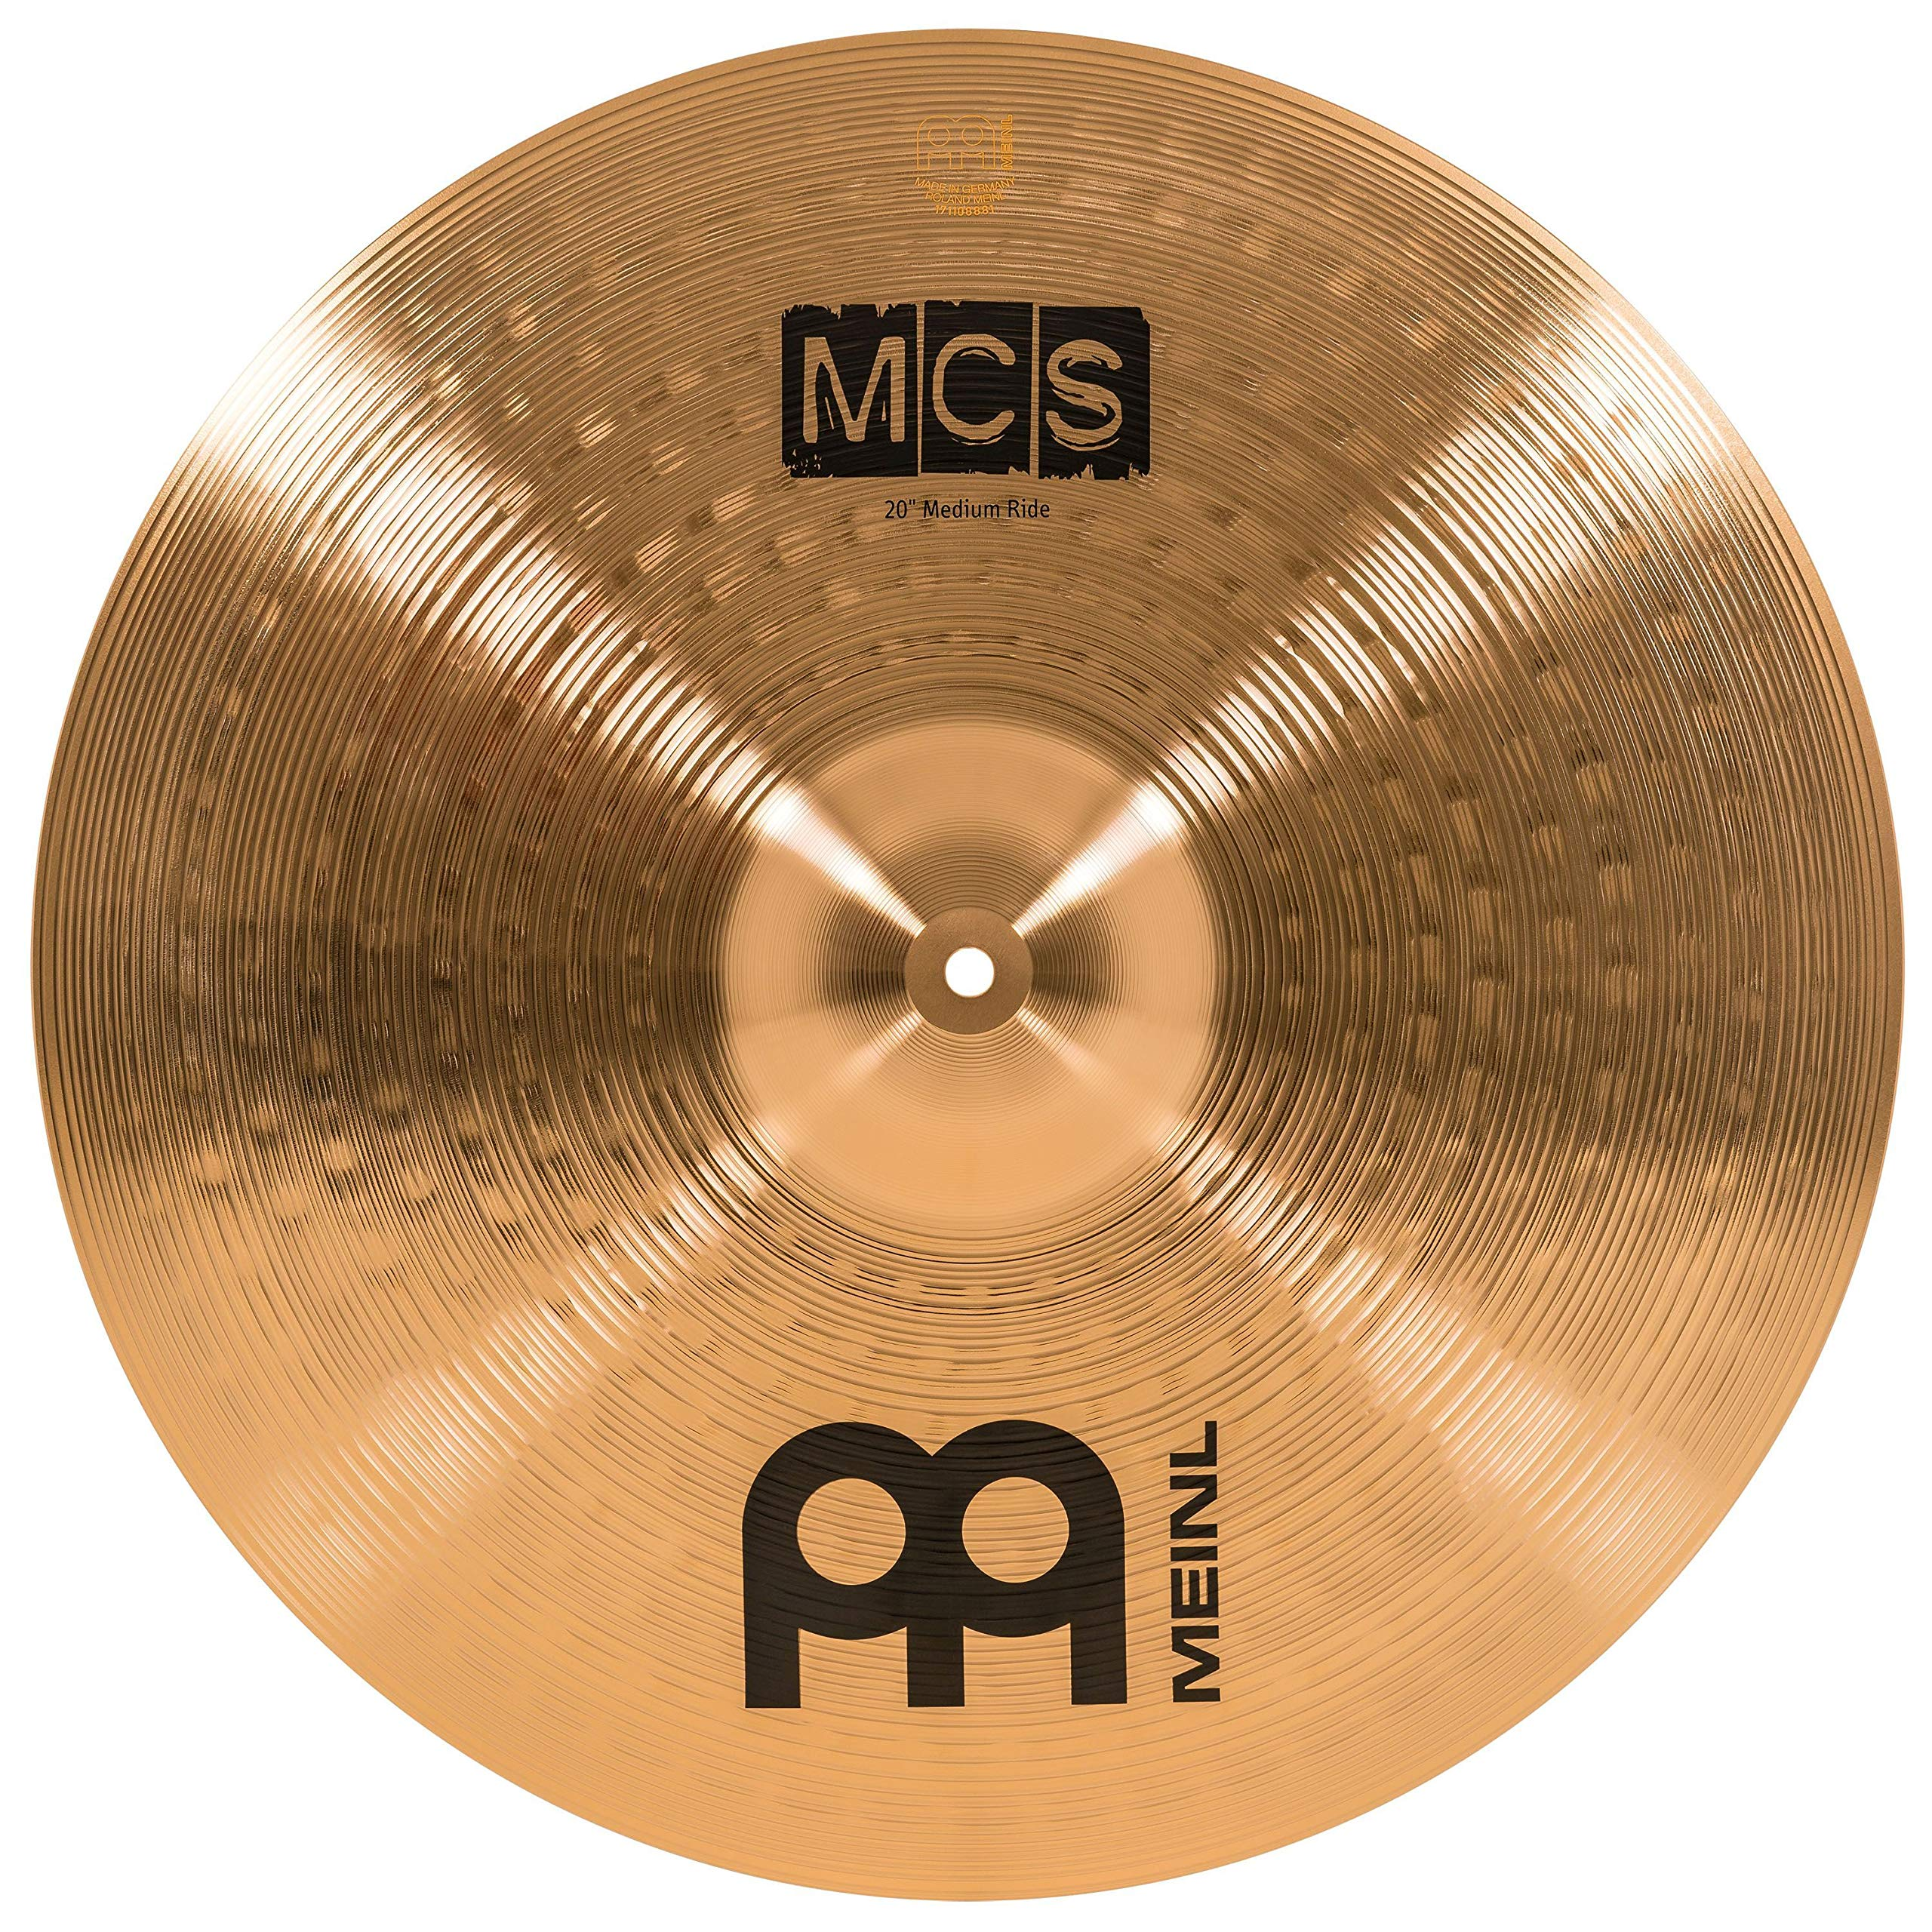 Meinl 20'' Ride Cymbal - MCS Traditional Finish Bronze for Drum Set, Made In Germany, 2-YEAR WARRANTY (MCS20MR) by Meinl Cymbals